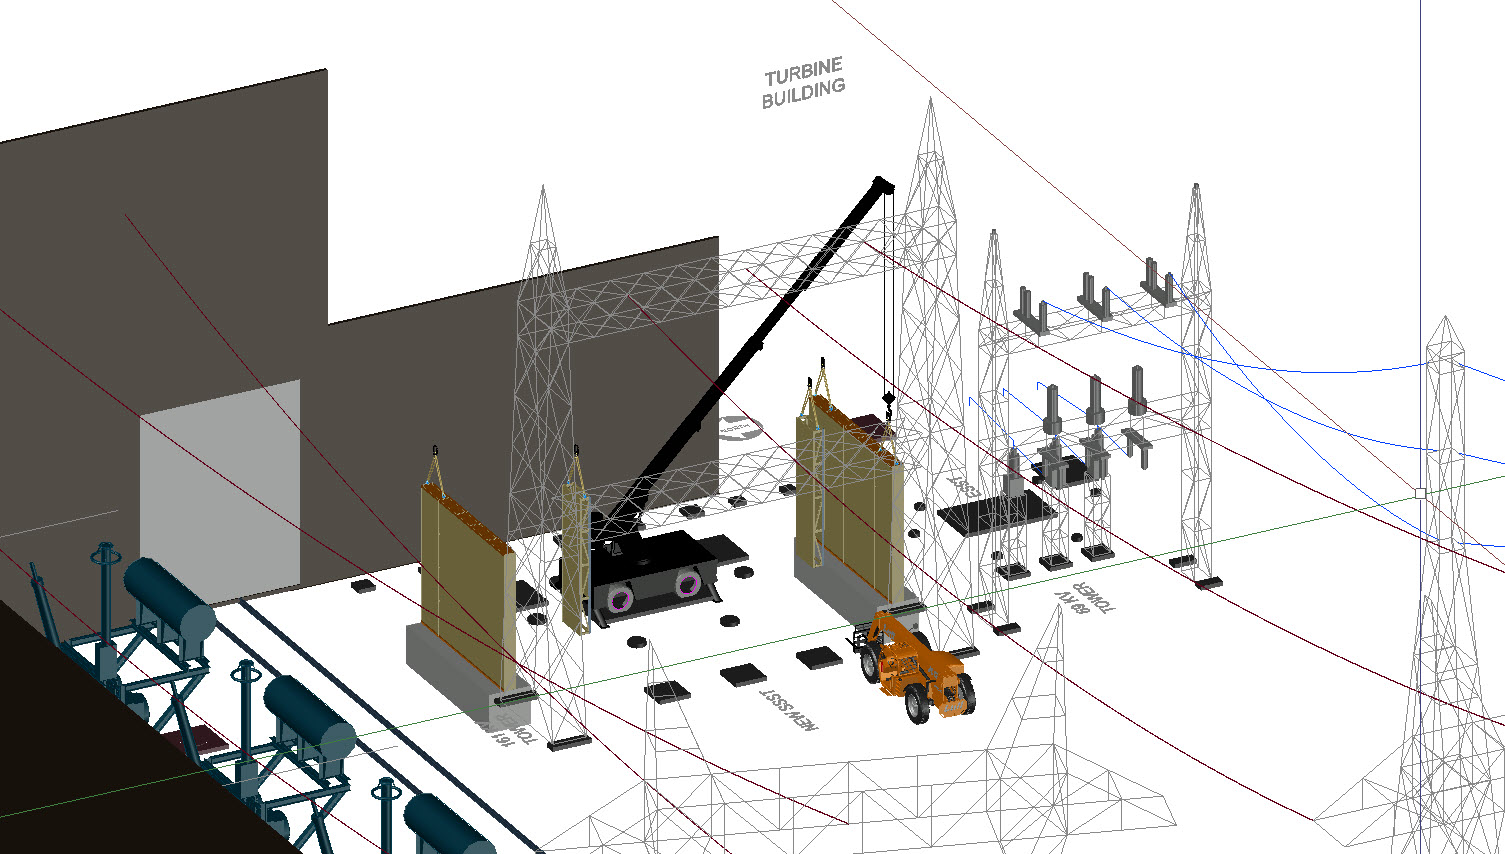 Projects Critical Systems Ga Power Transformer Wiring Diagram See Pictures Of One Our Recent Nuclear Design Build And Install Mfbbs Separation Barriers To Support Cooper Stations New